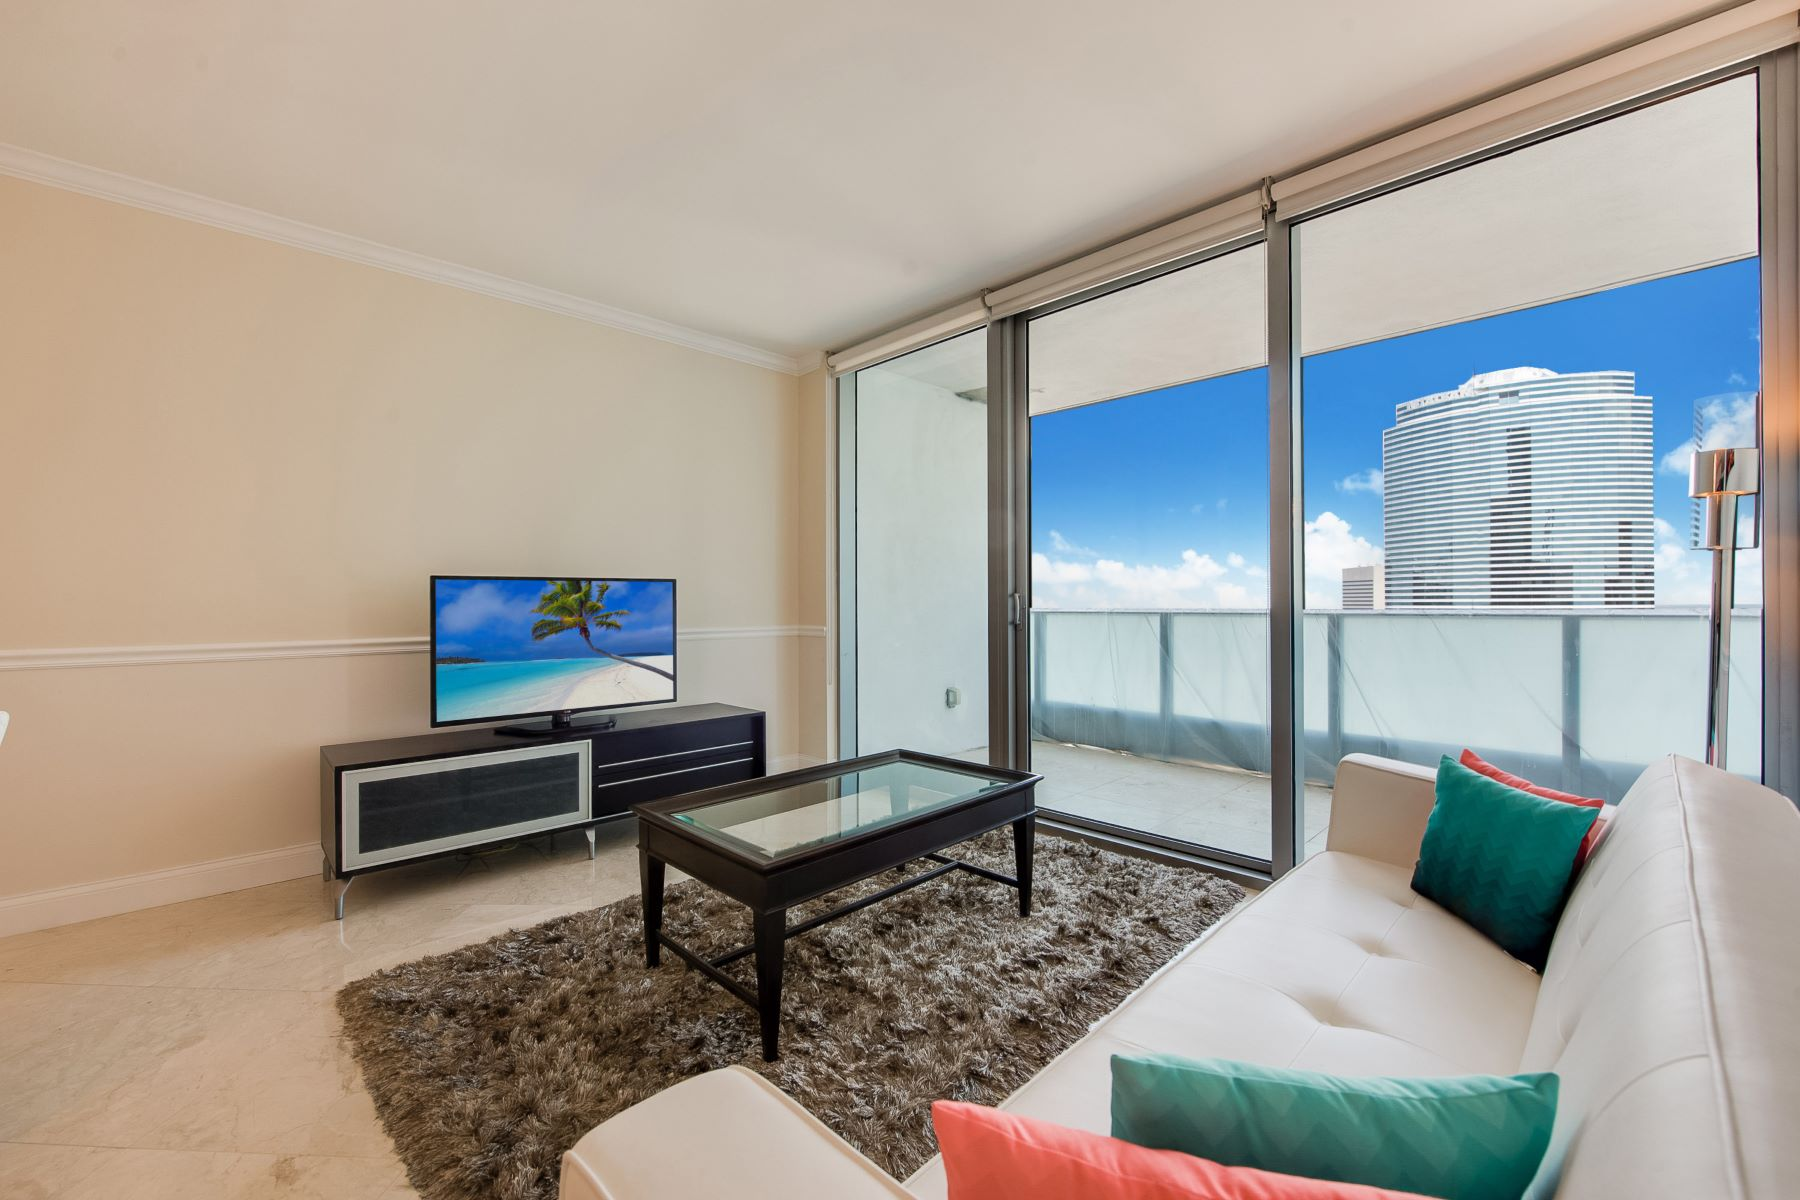 Condominium for Sale at 200 Biscayne Boulevard W #4010 200 Biscayne Boulevard W 4010 Miami, Florida, 33131 United States